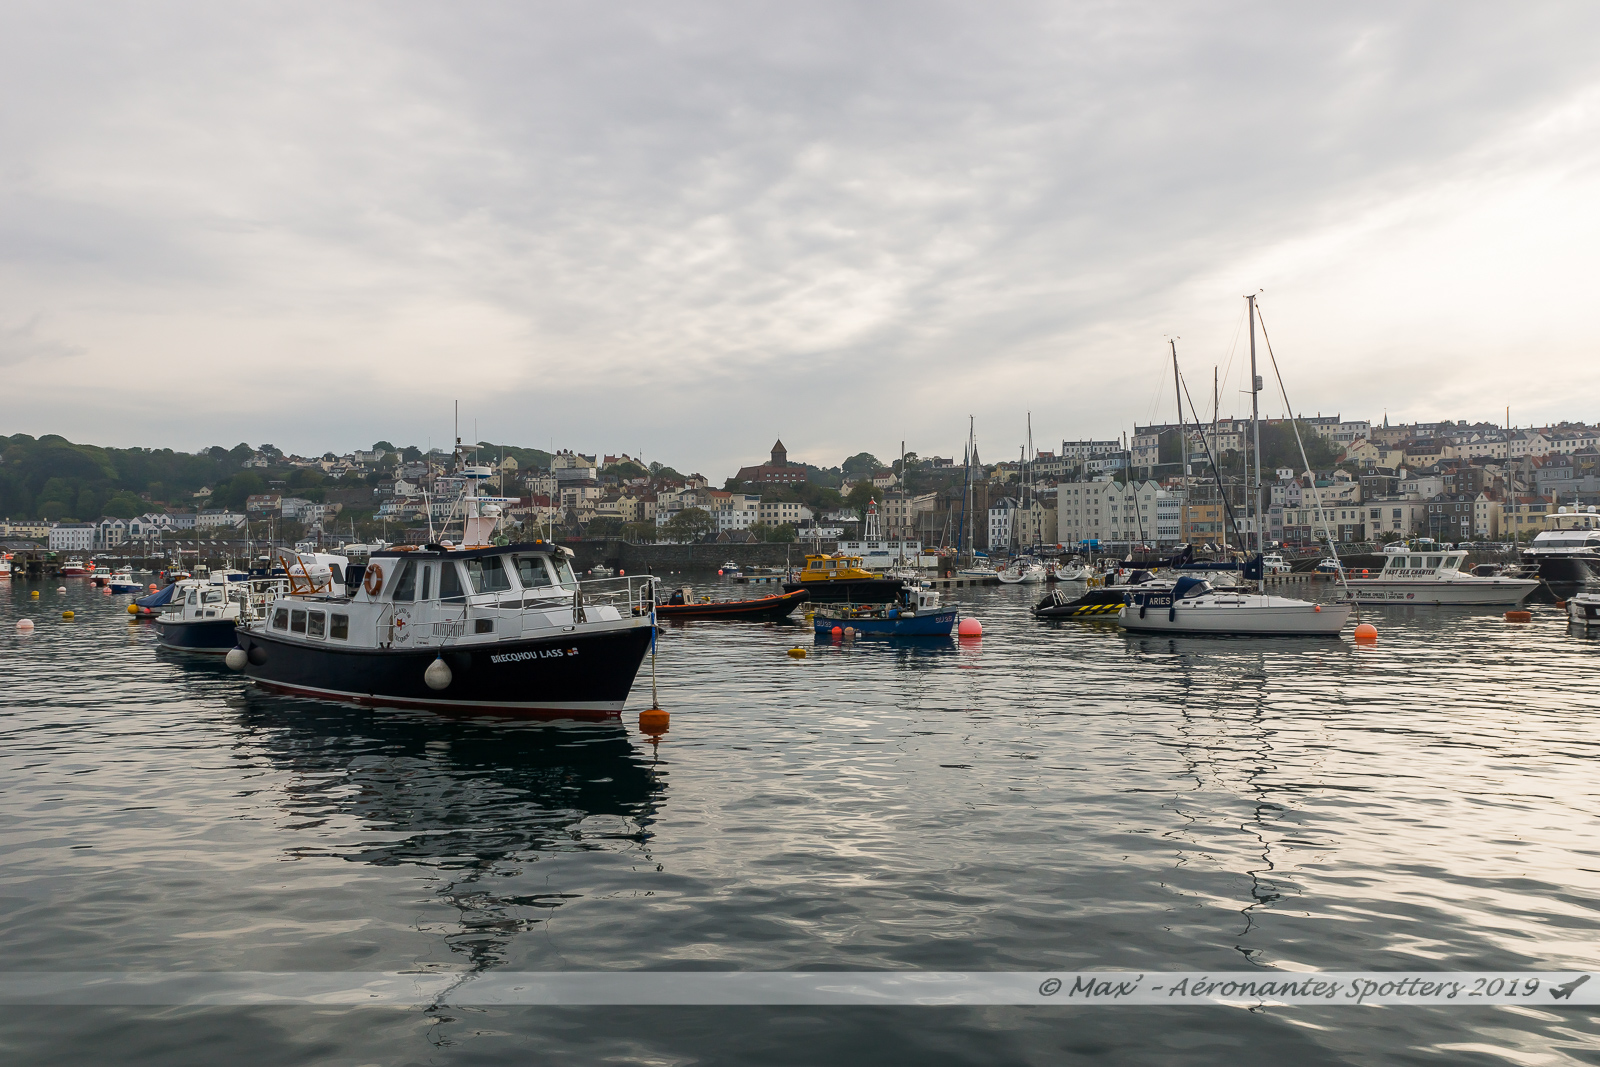 Guernsey Island - Saint Peter Port